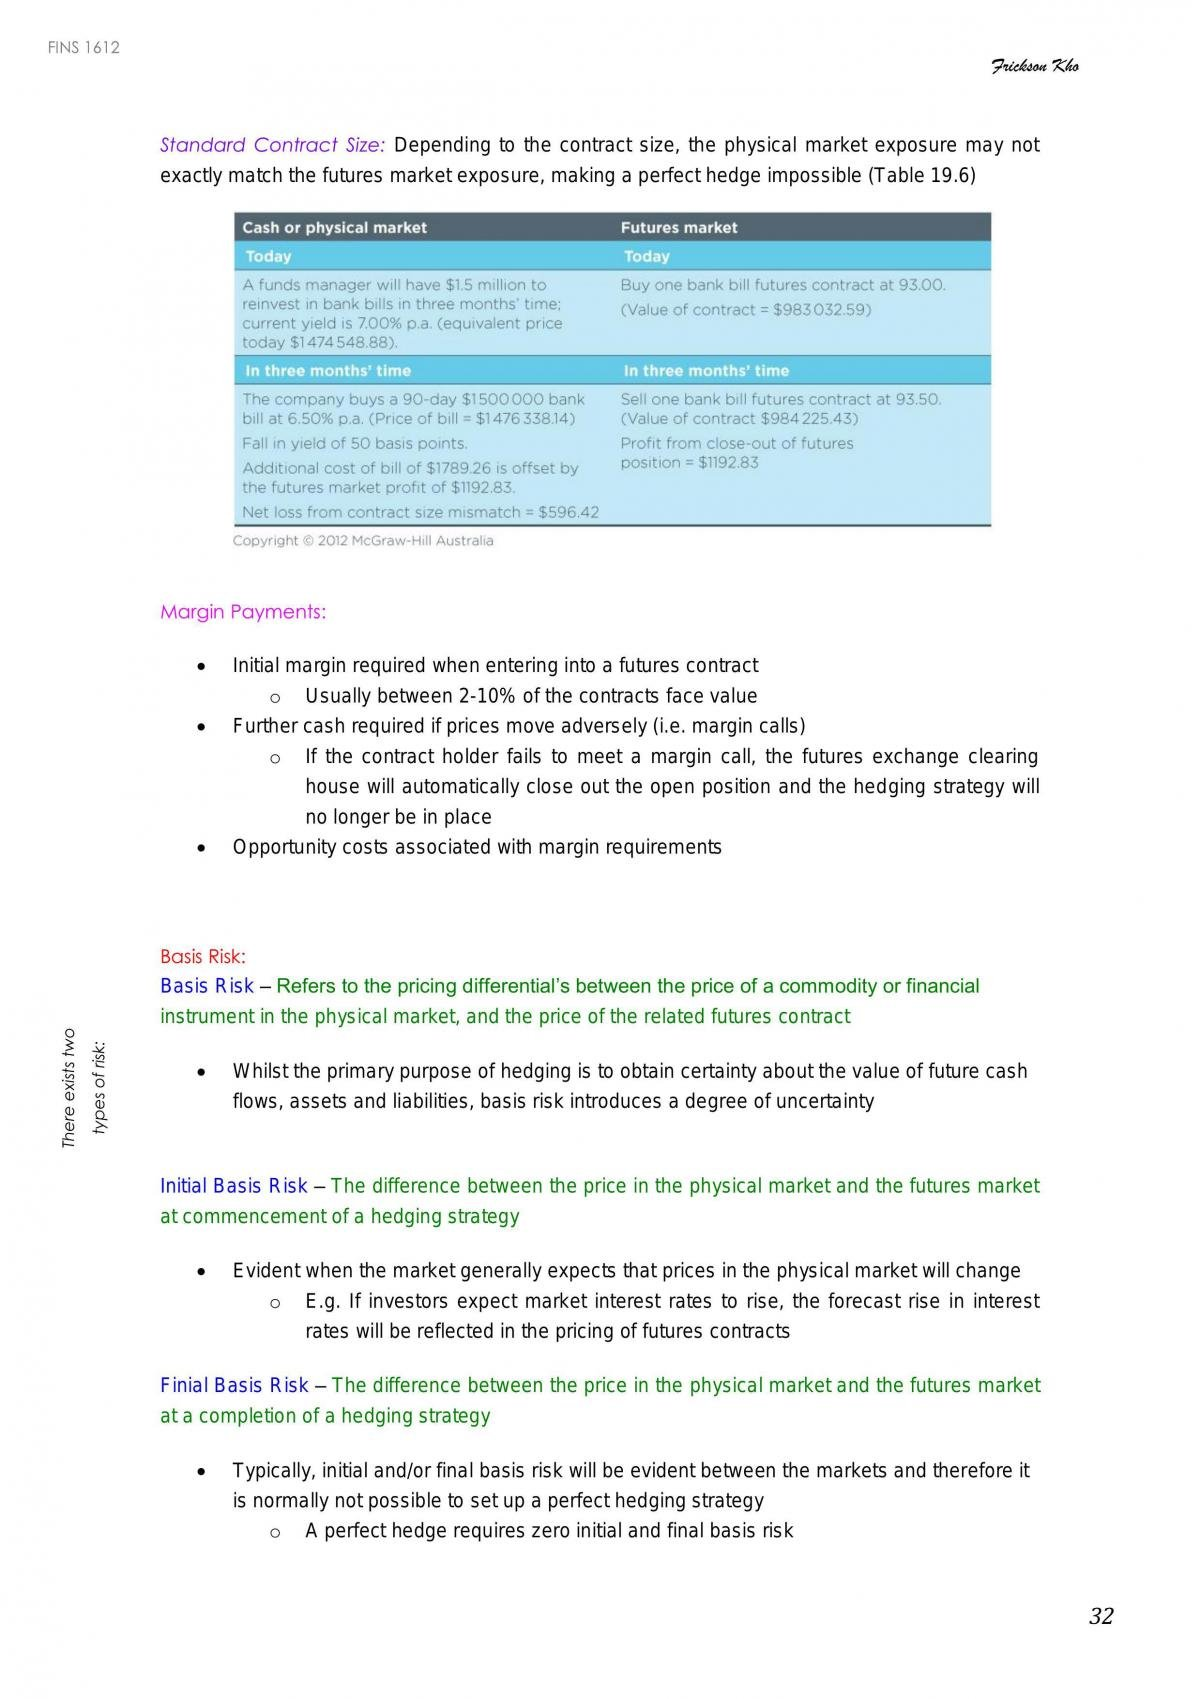 FINS1612 Notes - Page 32